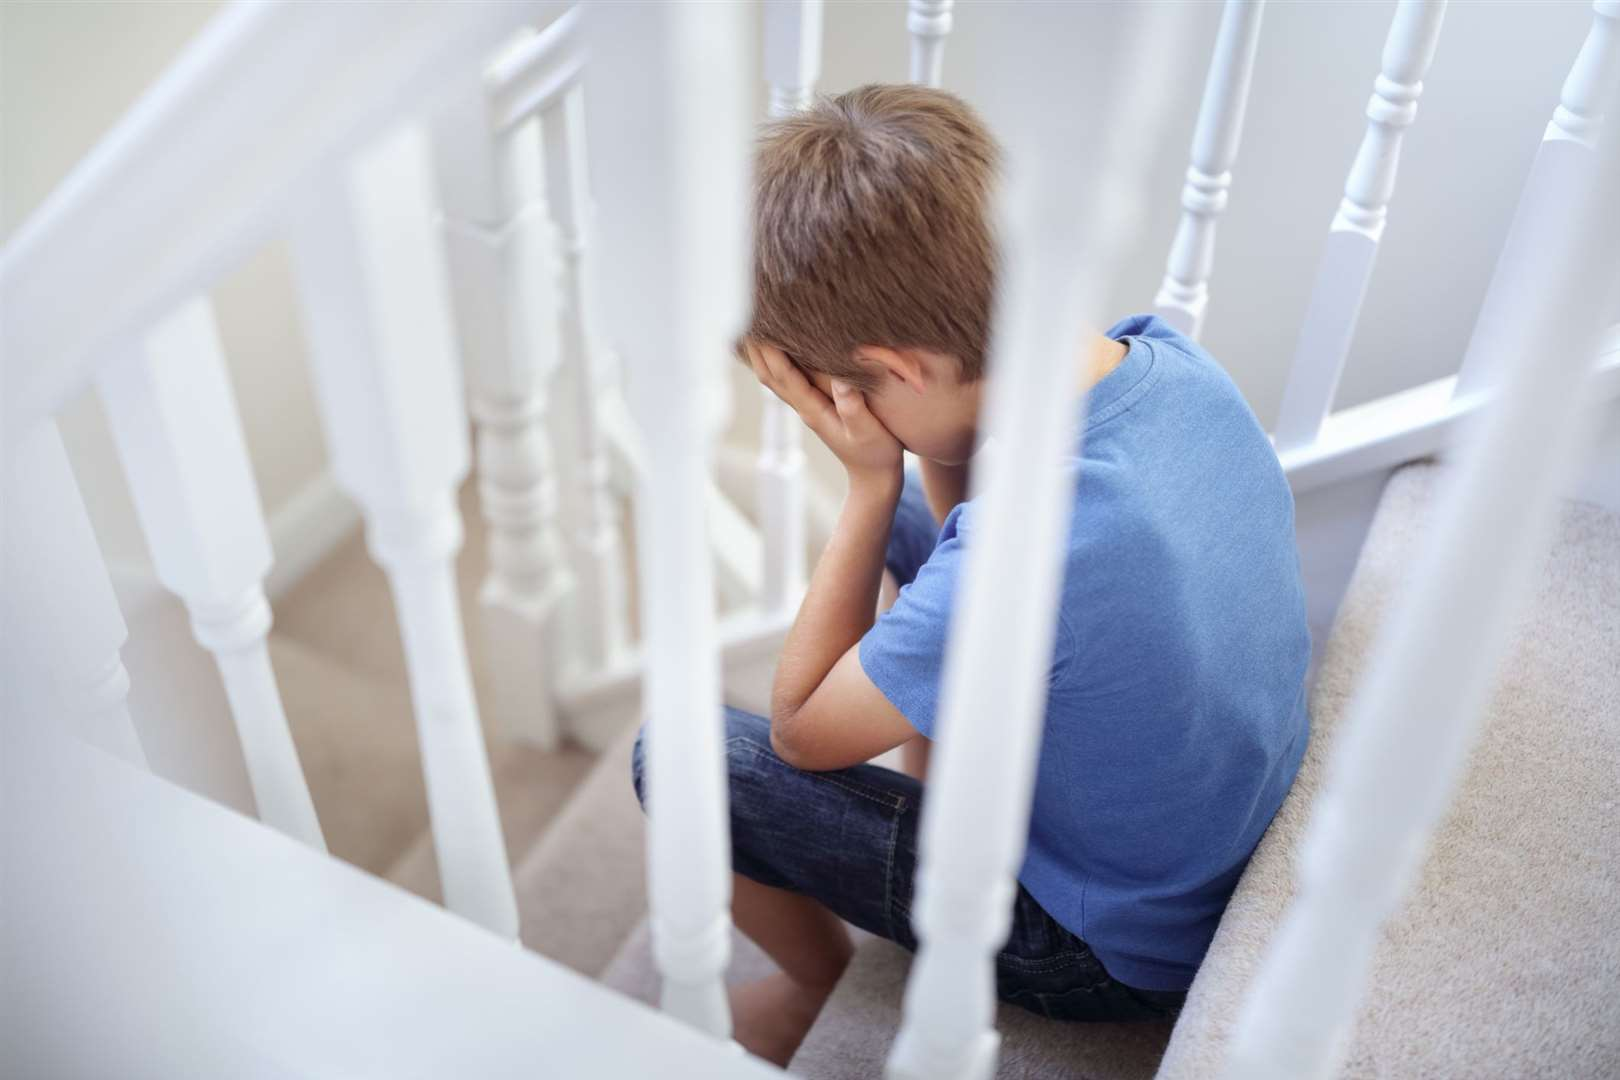 Children are struggling with everything that's going on. Photo: Getty Images/iStockphoto, BrianAJackson